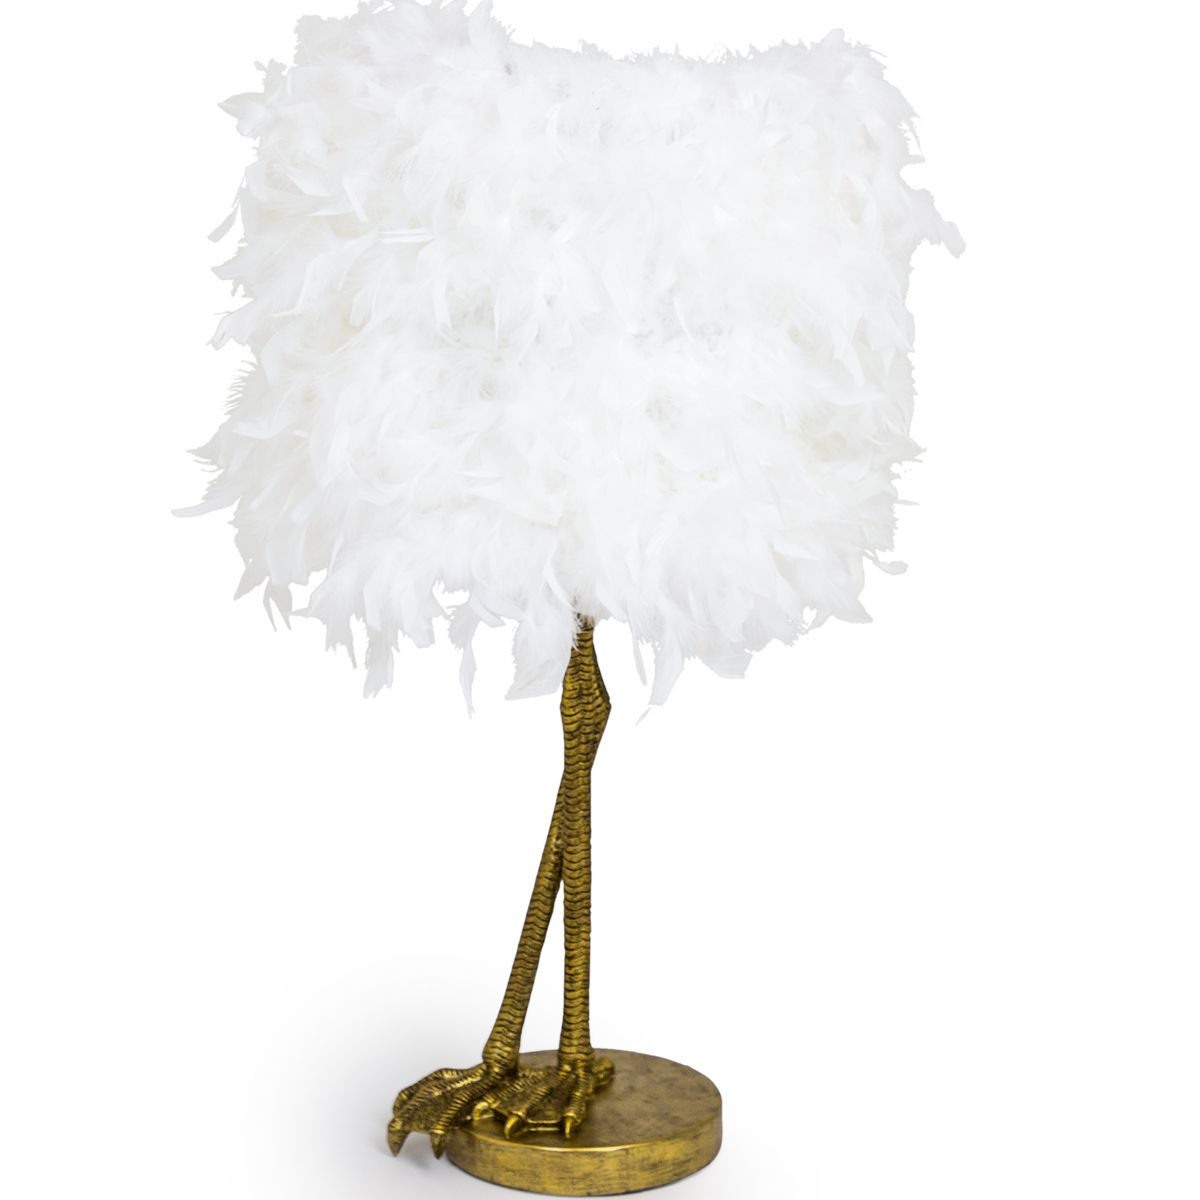 Bird Leg Lamp Gold with White Feather Shade 79 x 40 x 40 cm